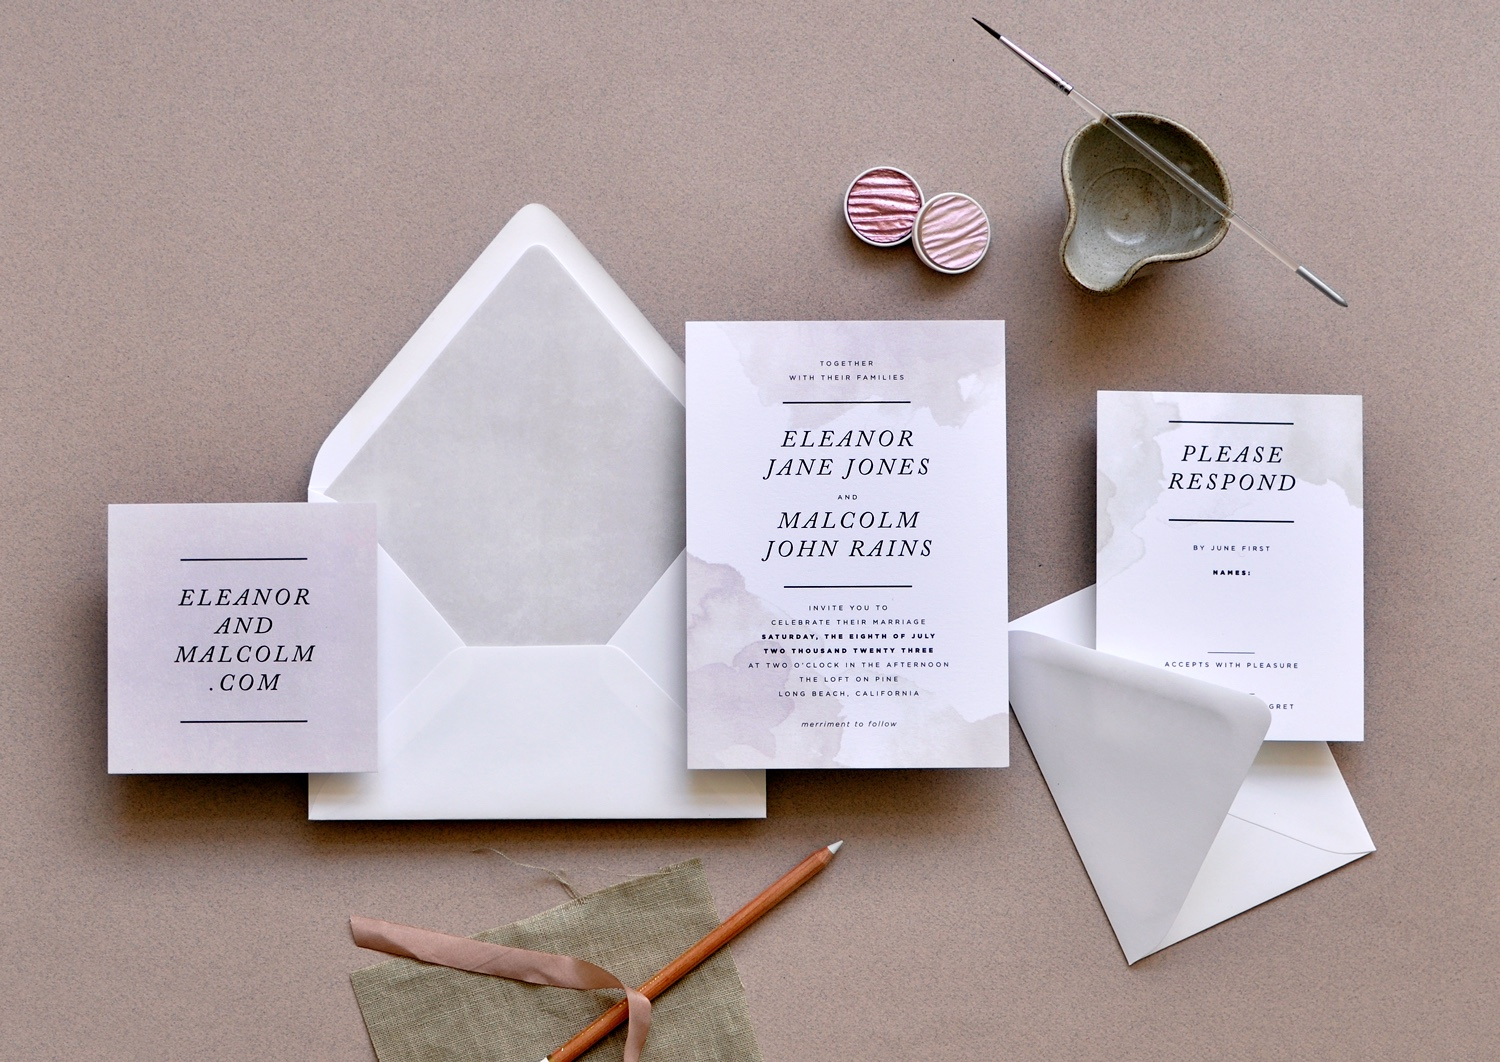 Earth tones set the perfect tone for an introduction to your special day!  Splotches of watercolor wash beautifully highlight your personalized text.